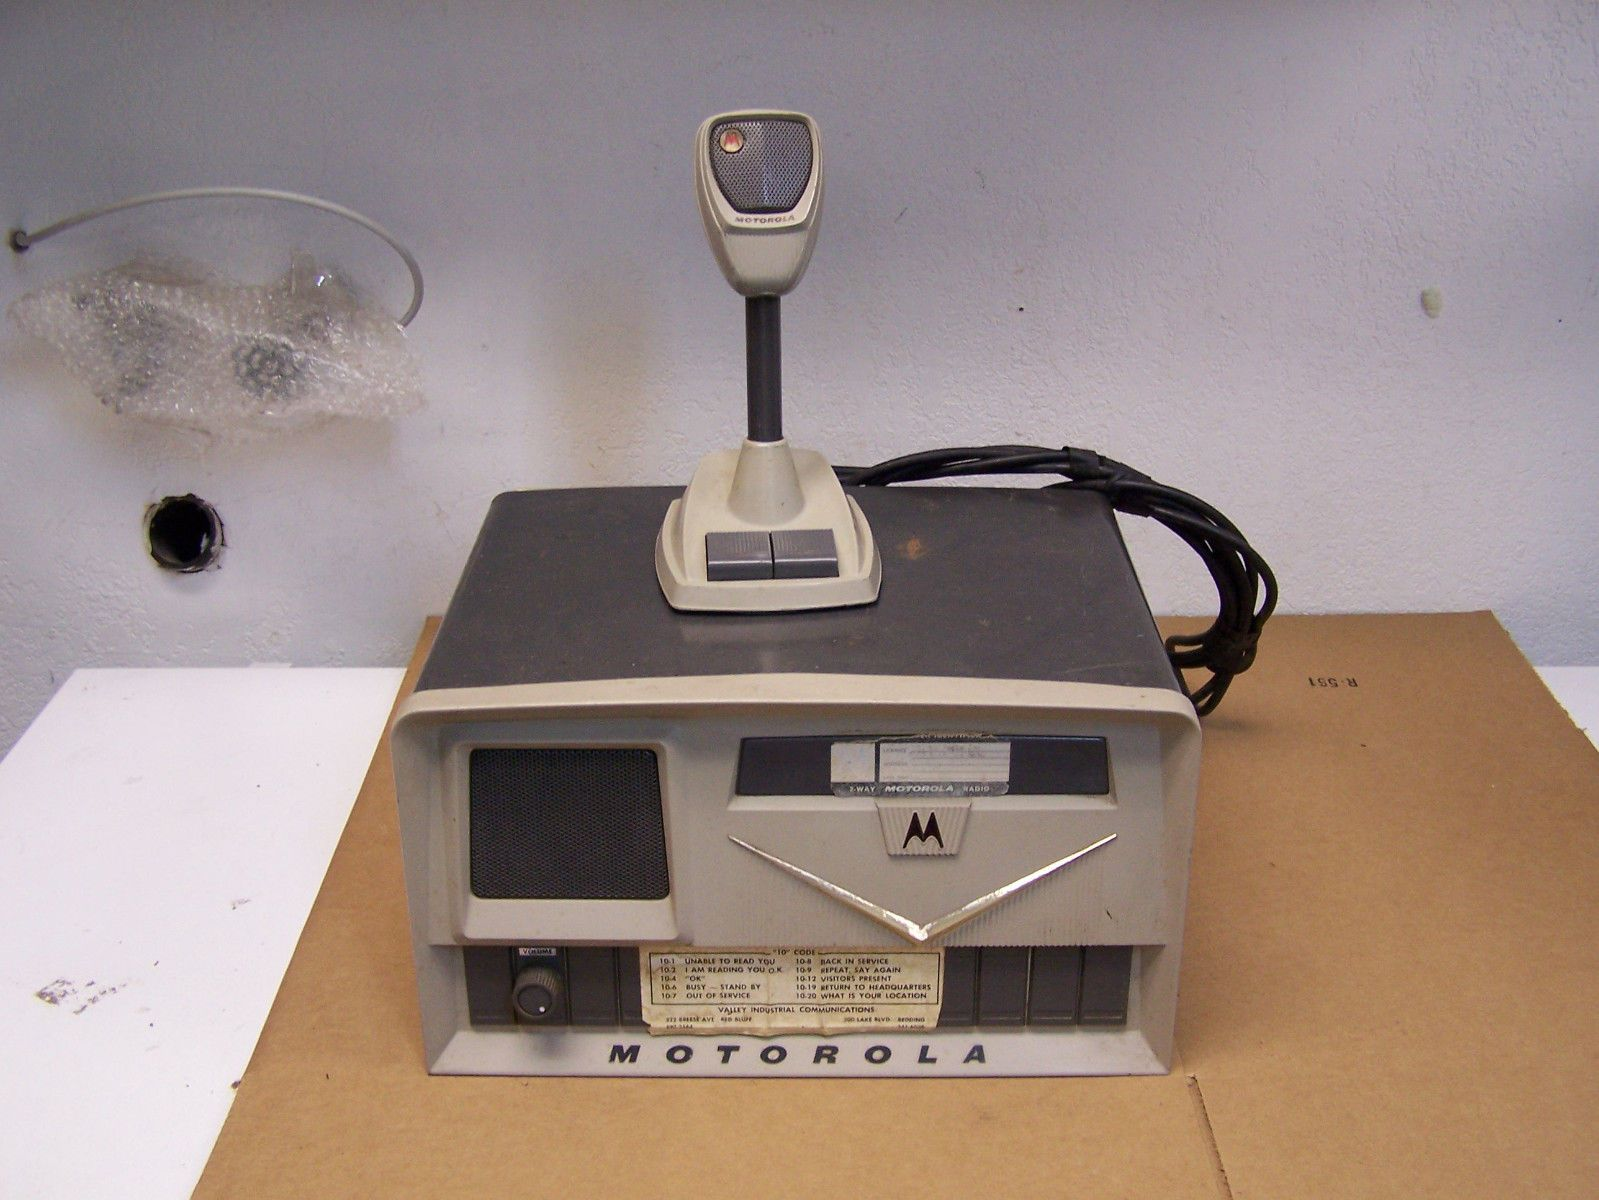 vintage motorola base station model t1207a with tmn6017a desk mic in consumer electronics radio communication ham amateur radio ham radio transceivers  [ 1599 x 1200 Pixel ]